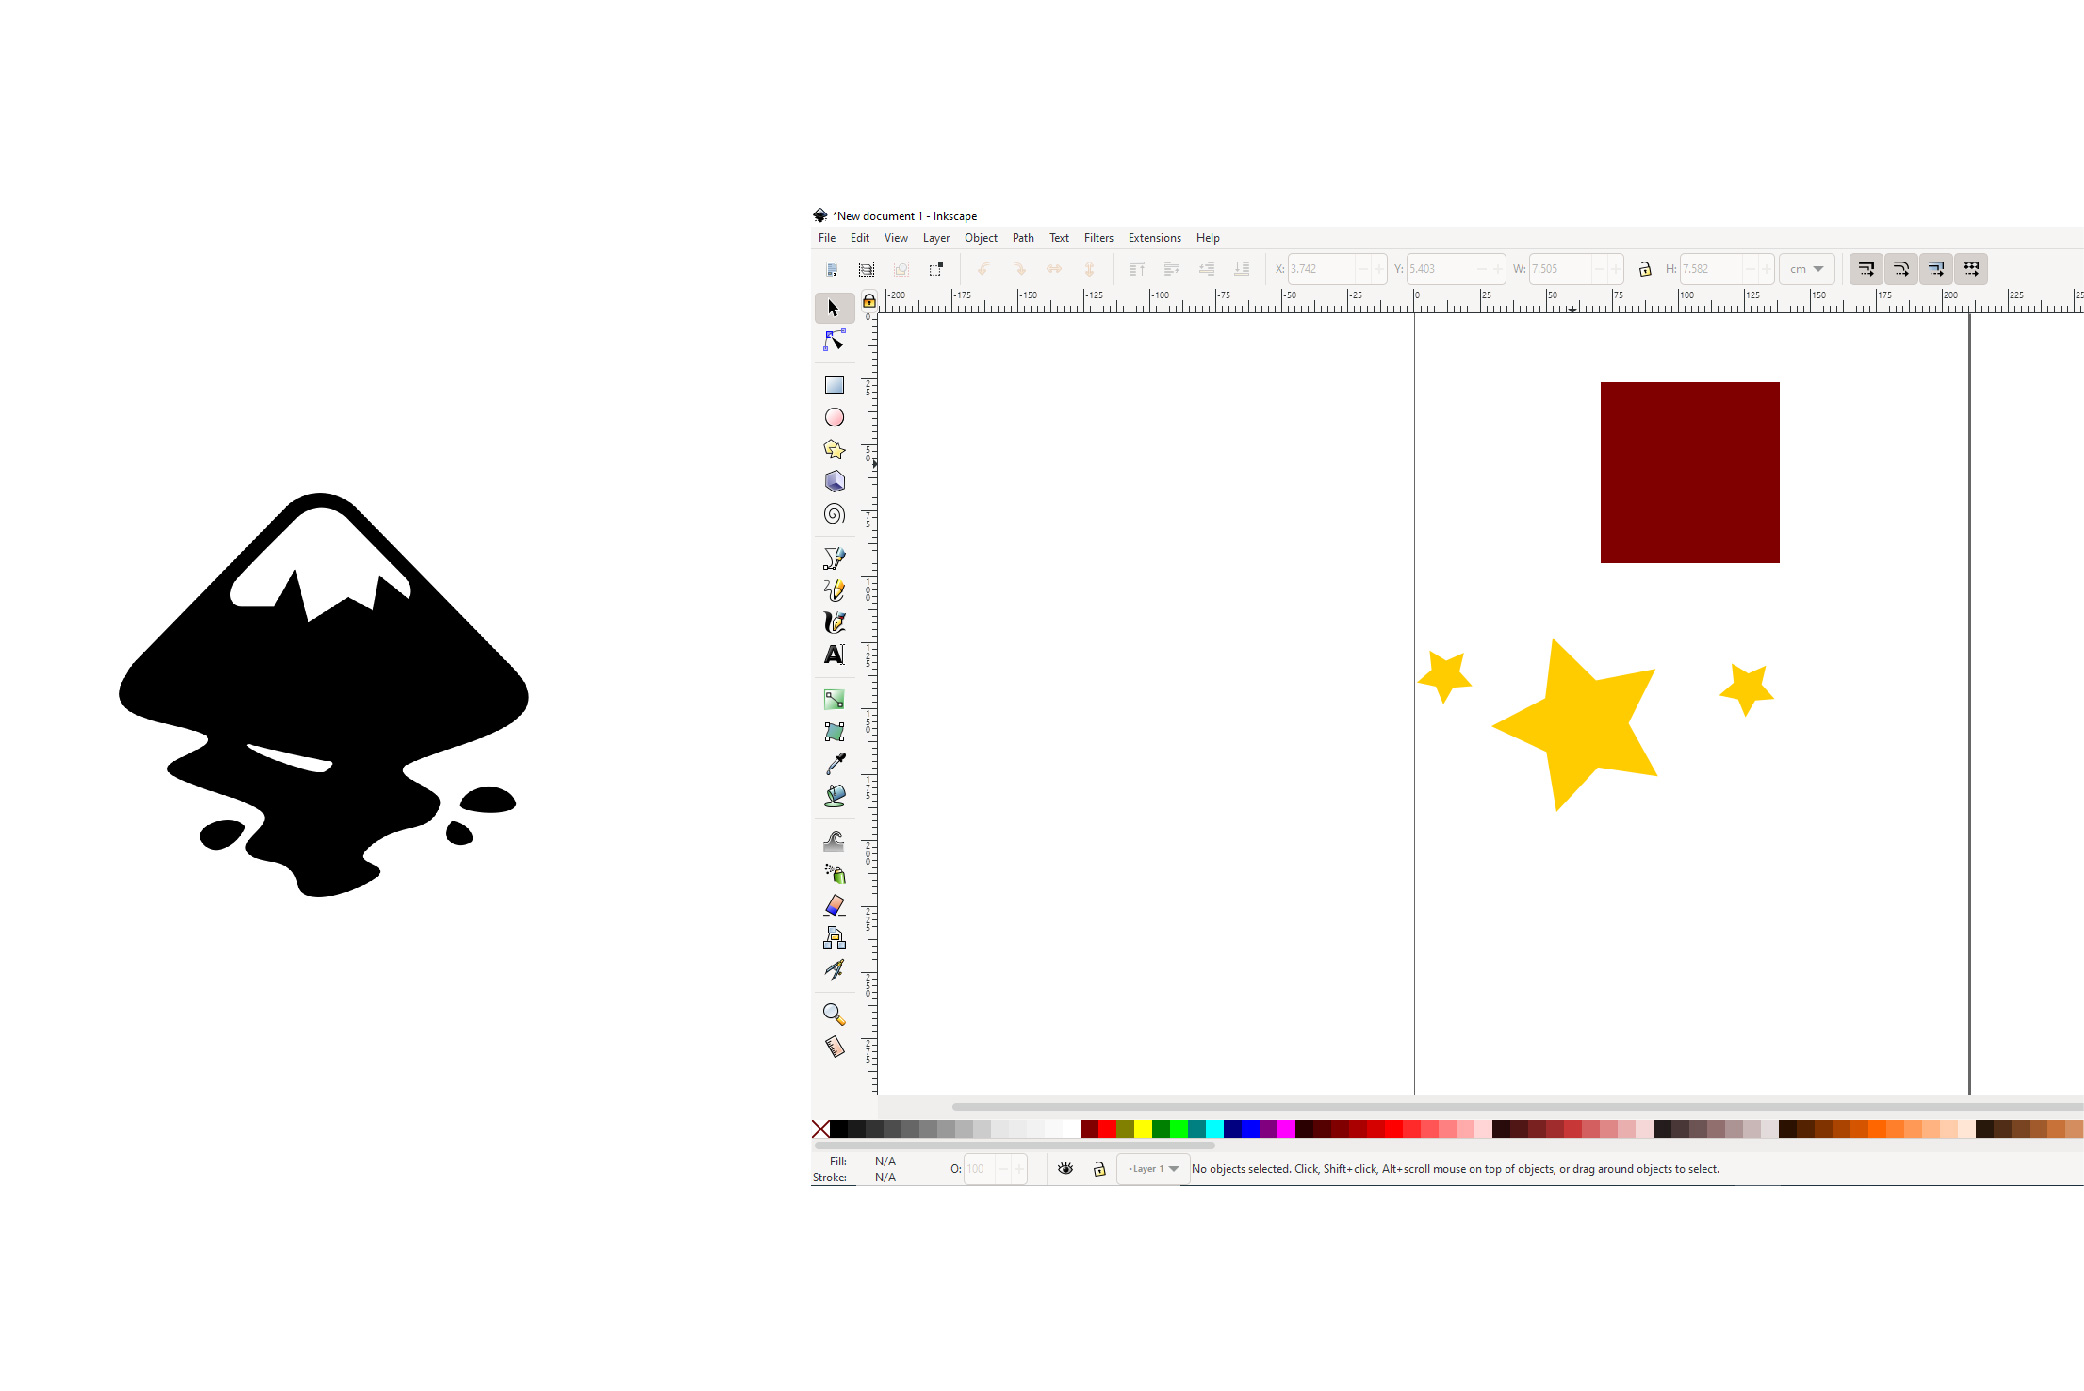 Inkscape tool